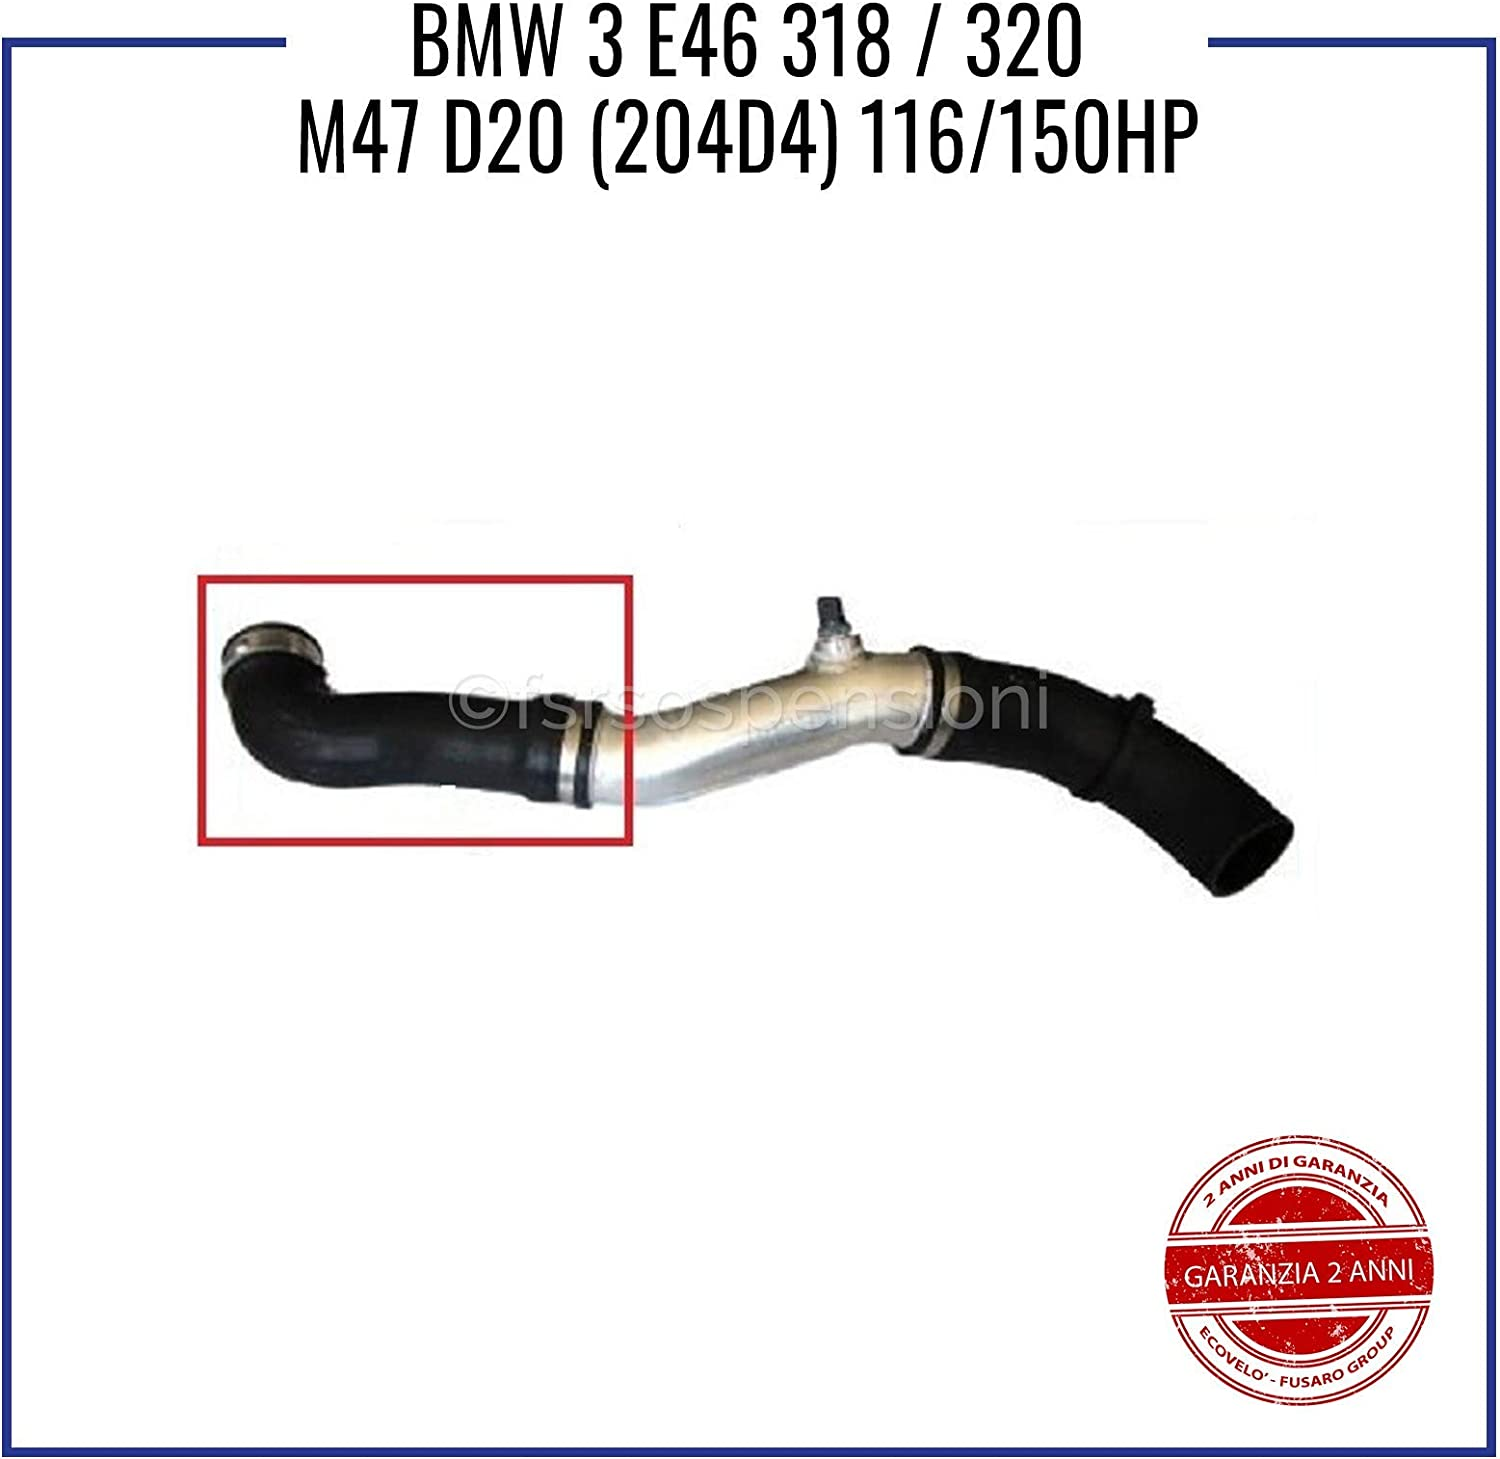 B M W 3 E46 3.18 3.20 M47 D20 MANICOTTO INTERCOOLER TUBO TURBO 11617799397 11617791393